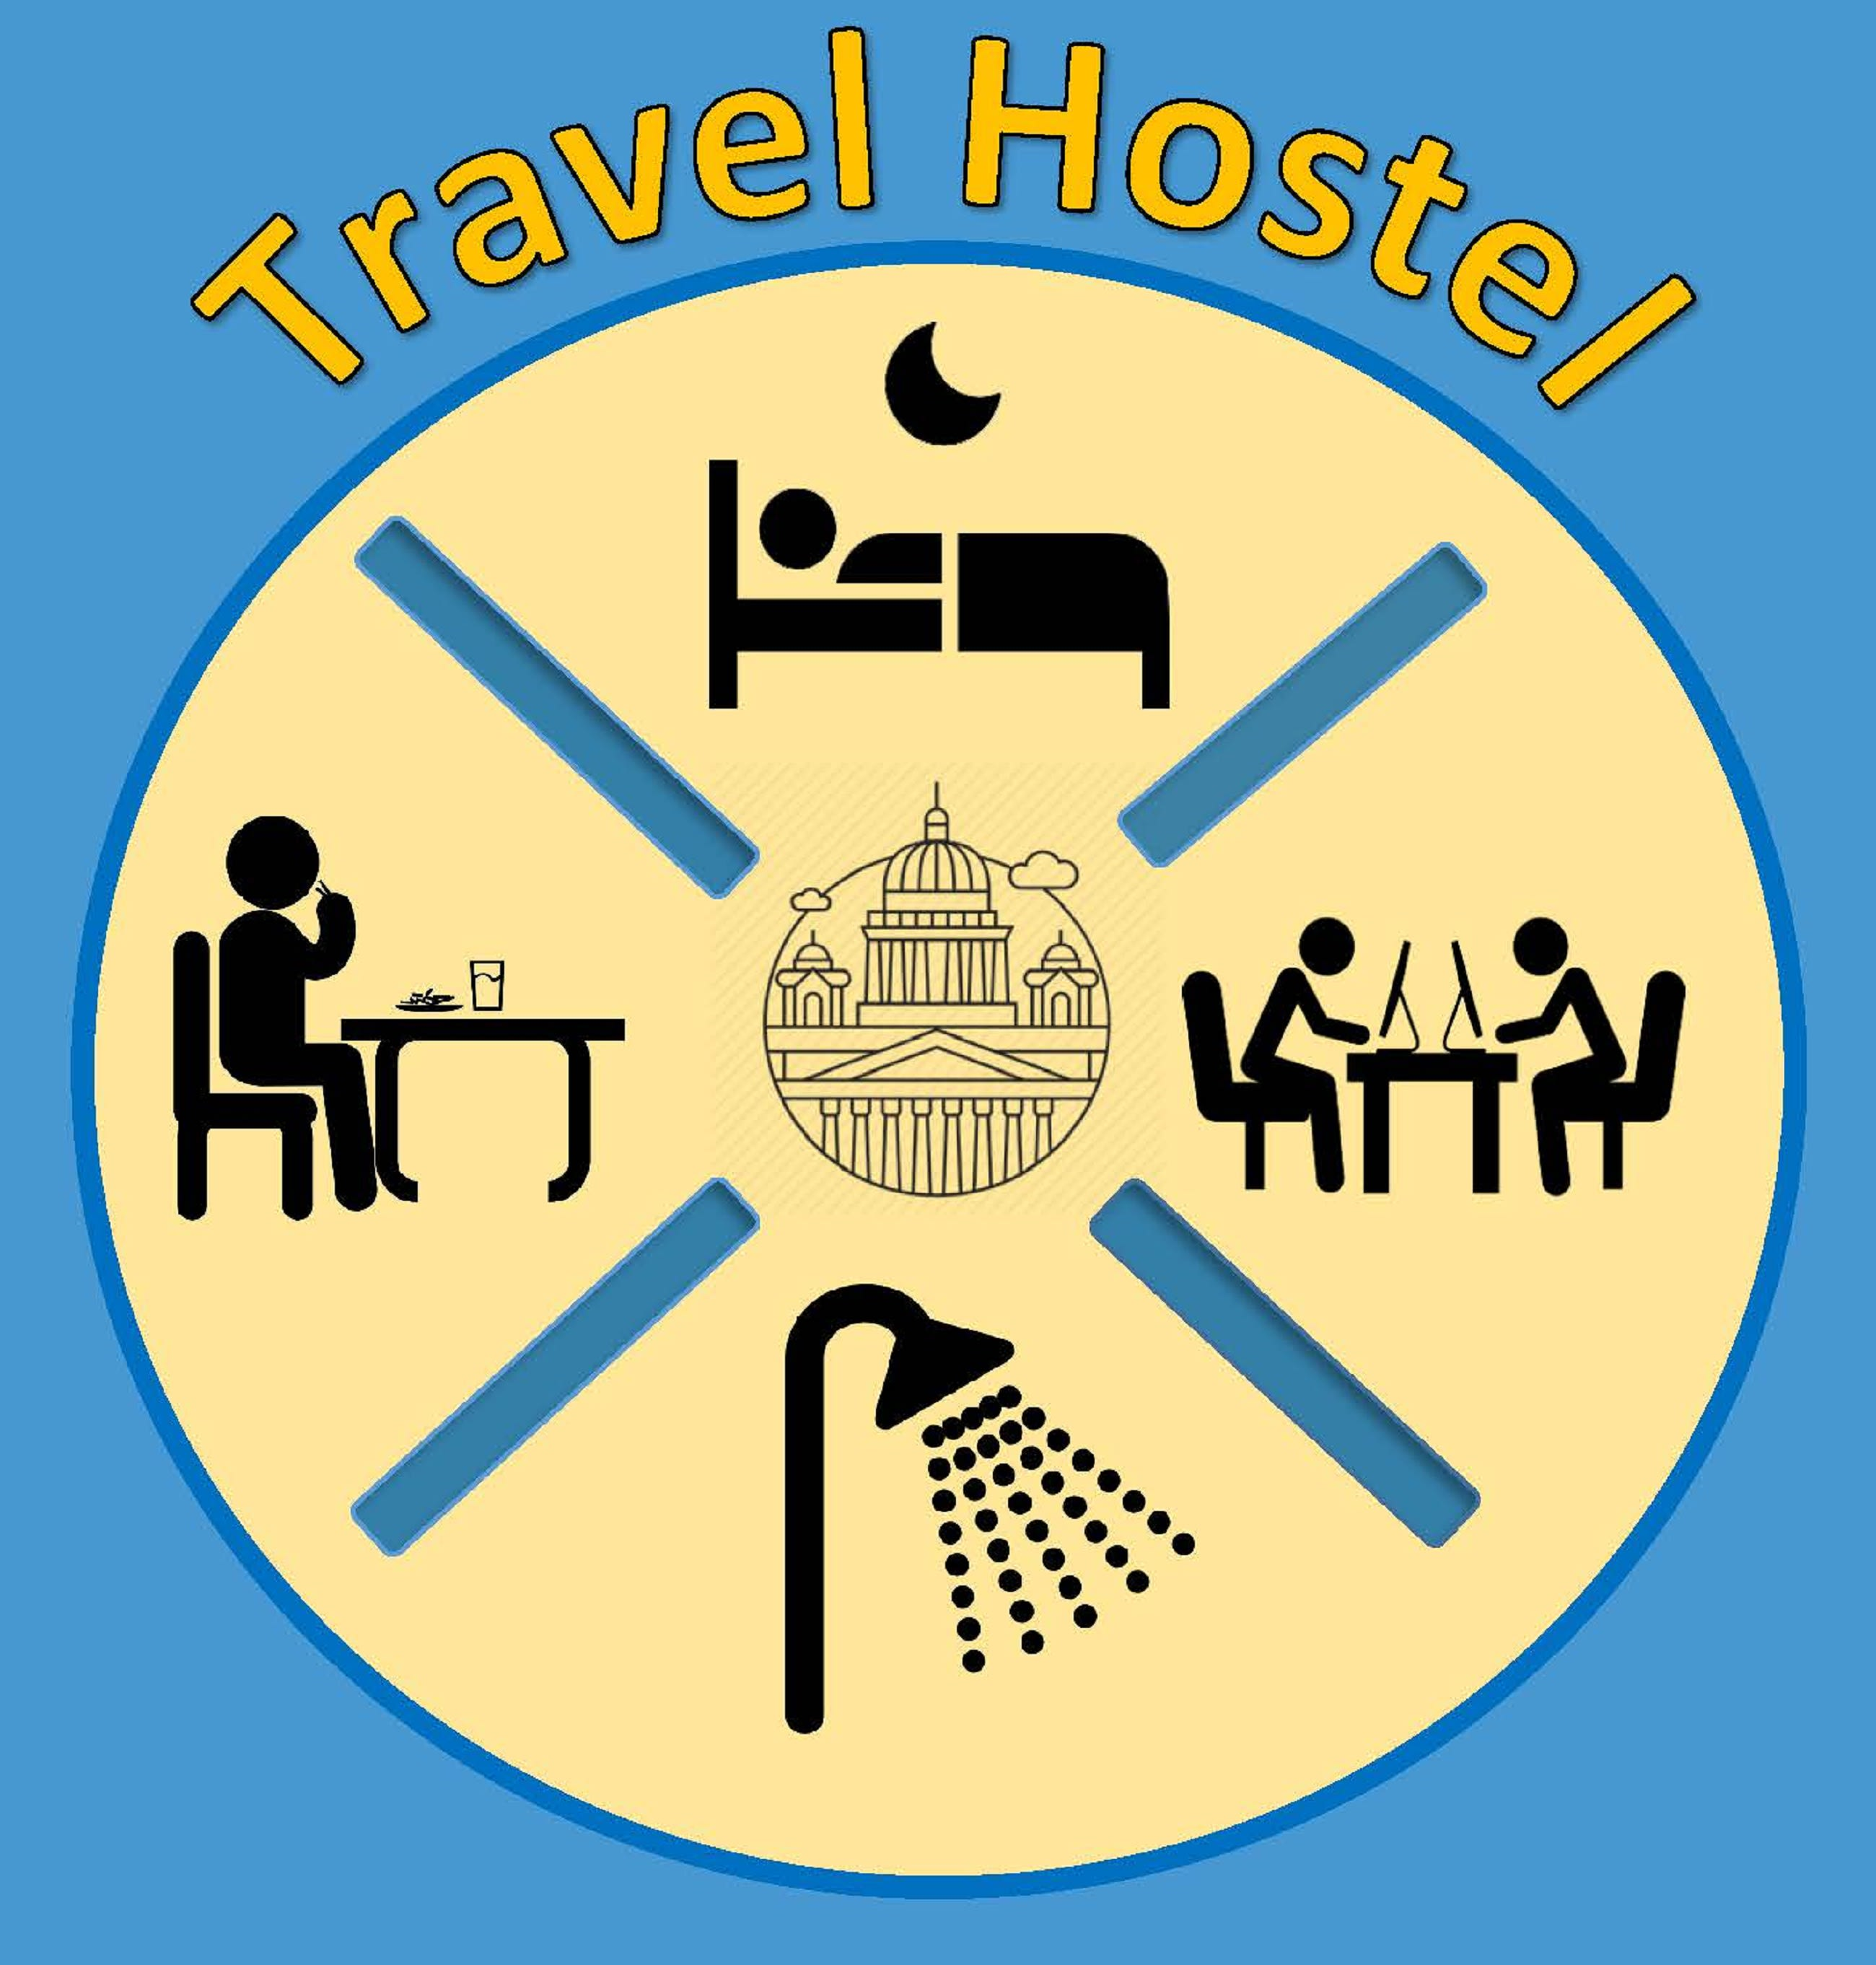 HOSTEL - Travel Hostel